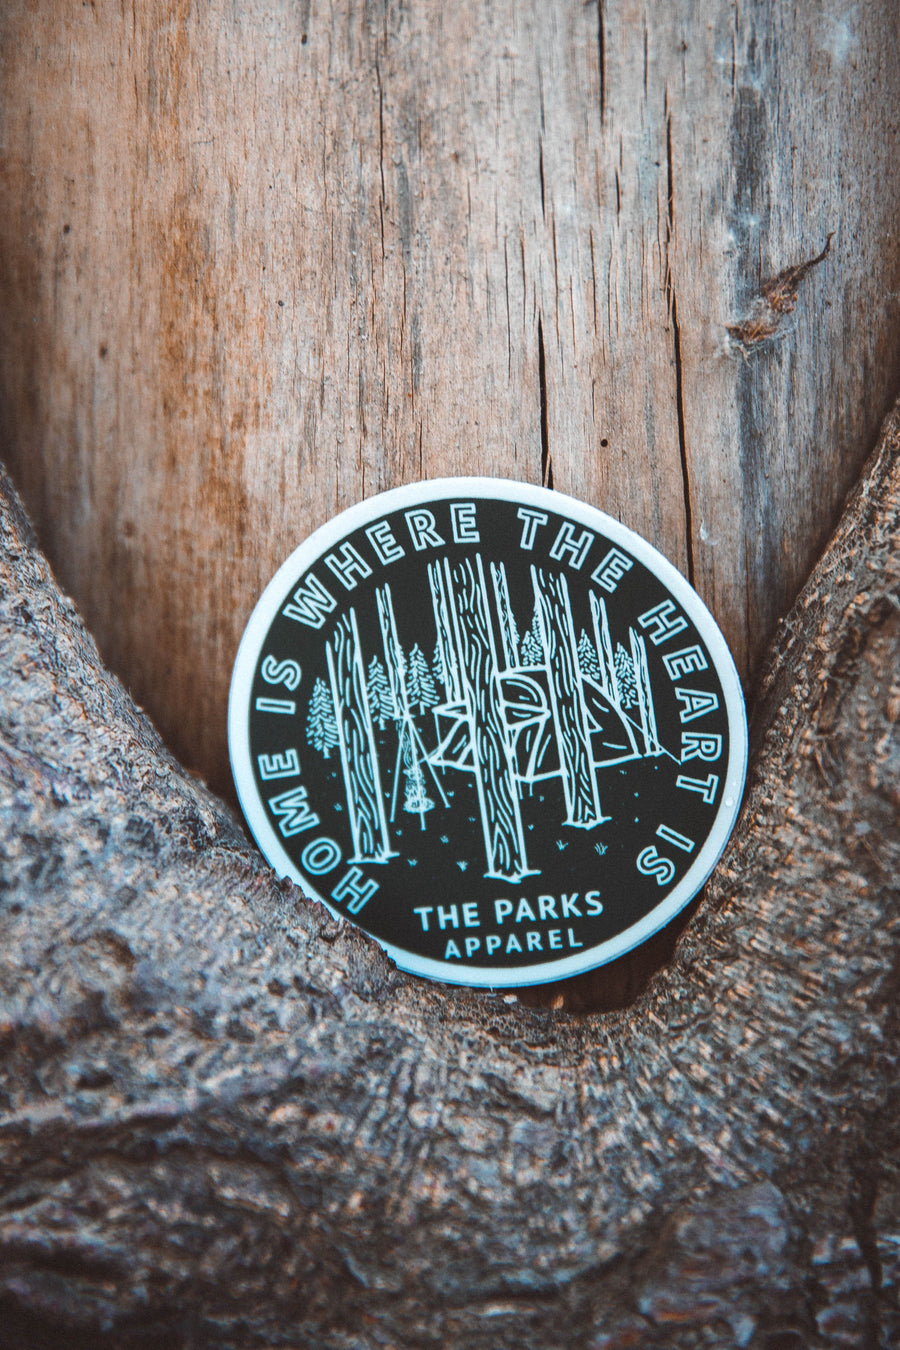 Home Is Where The Heart Is Sticker - Wondery, A Parks Apparel Brand